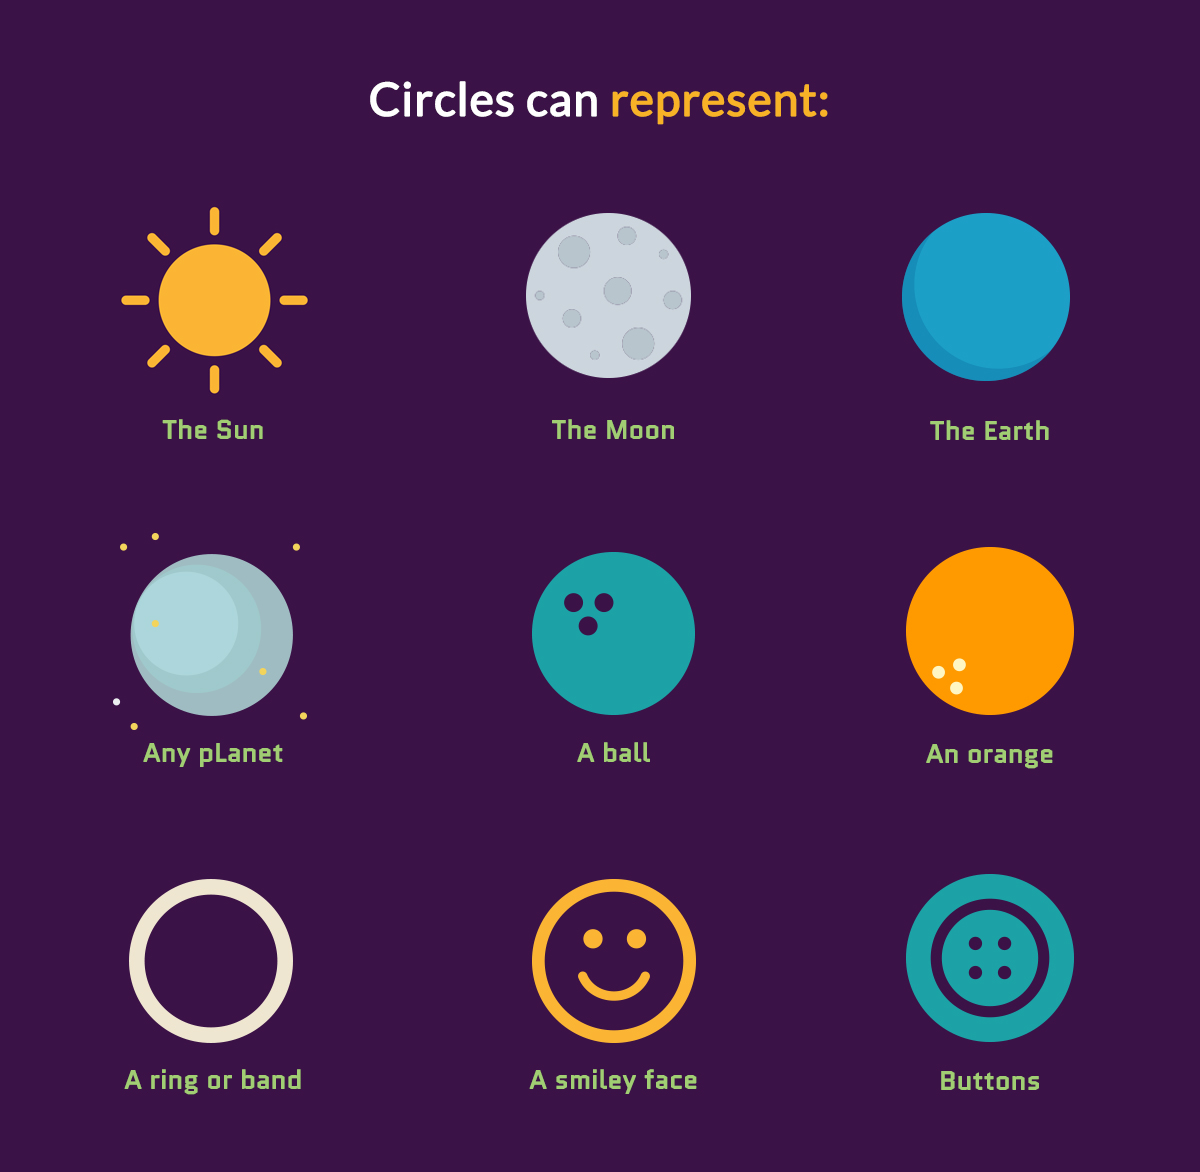 Circles-can-represent How-to-Creatively-Use-Shapes to-Make-Your-Designs-Stand-Out-geometric meanings